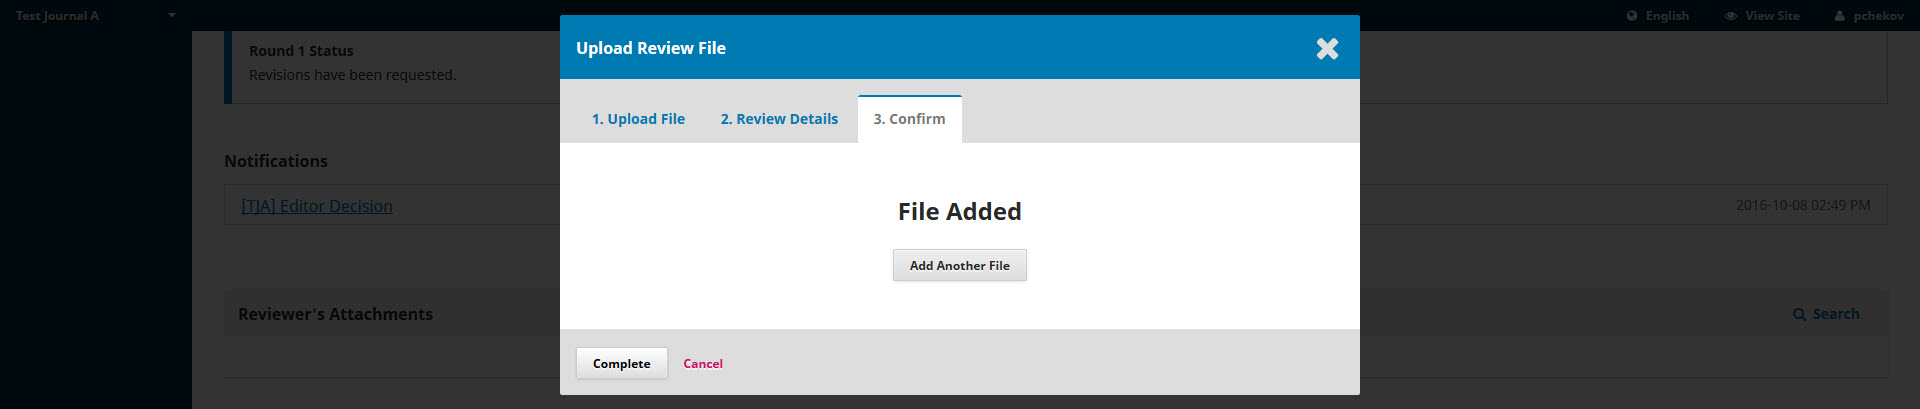 ojs3-author-responding-revisions-upload-file-confirm